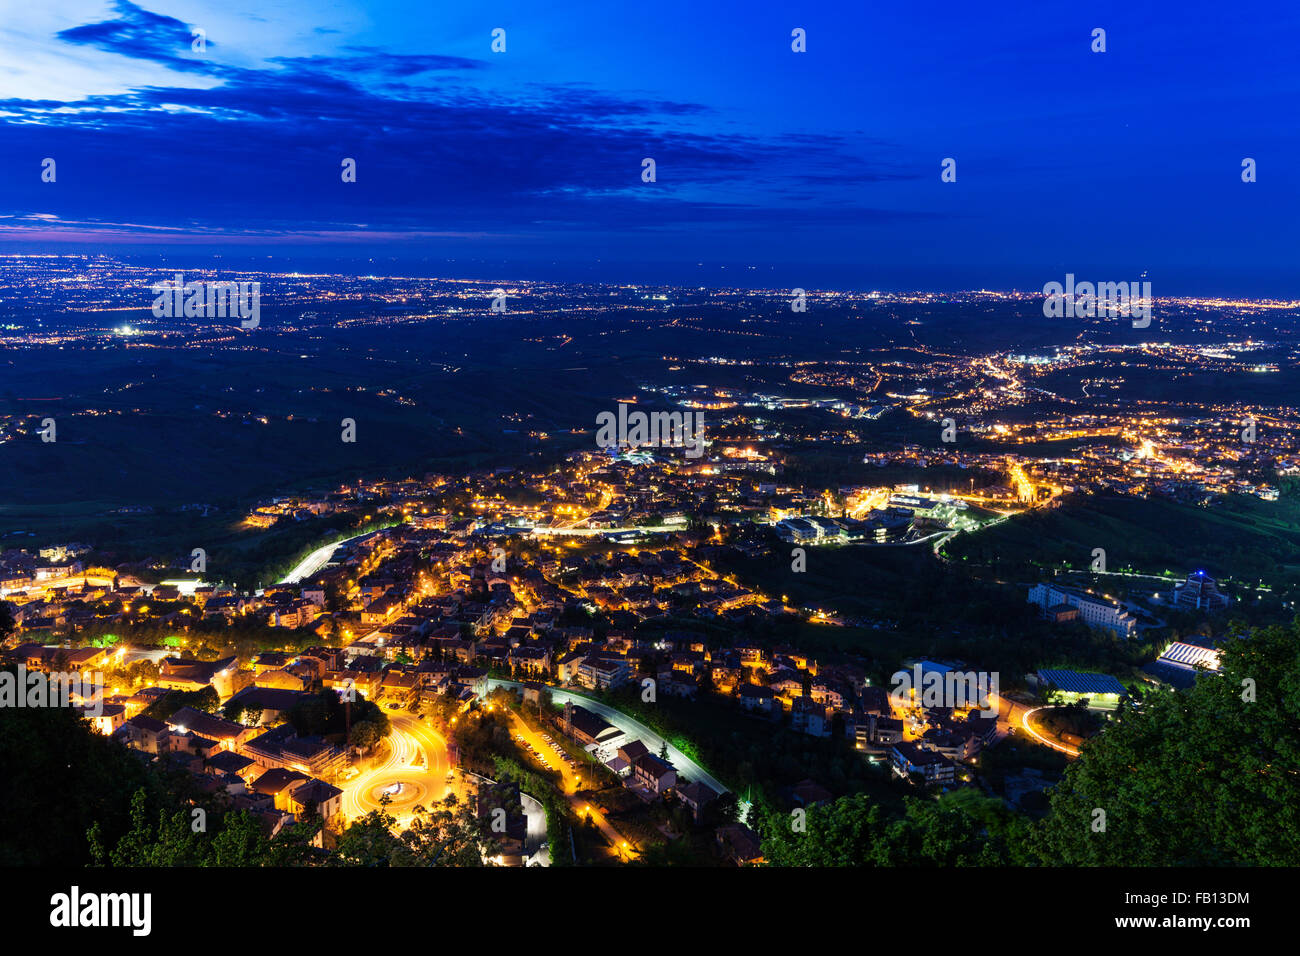 Townscape at night - Stock Image